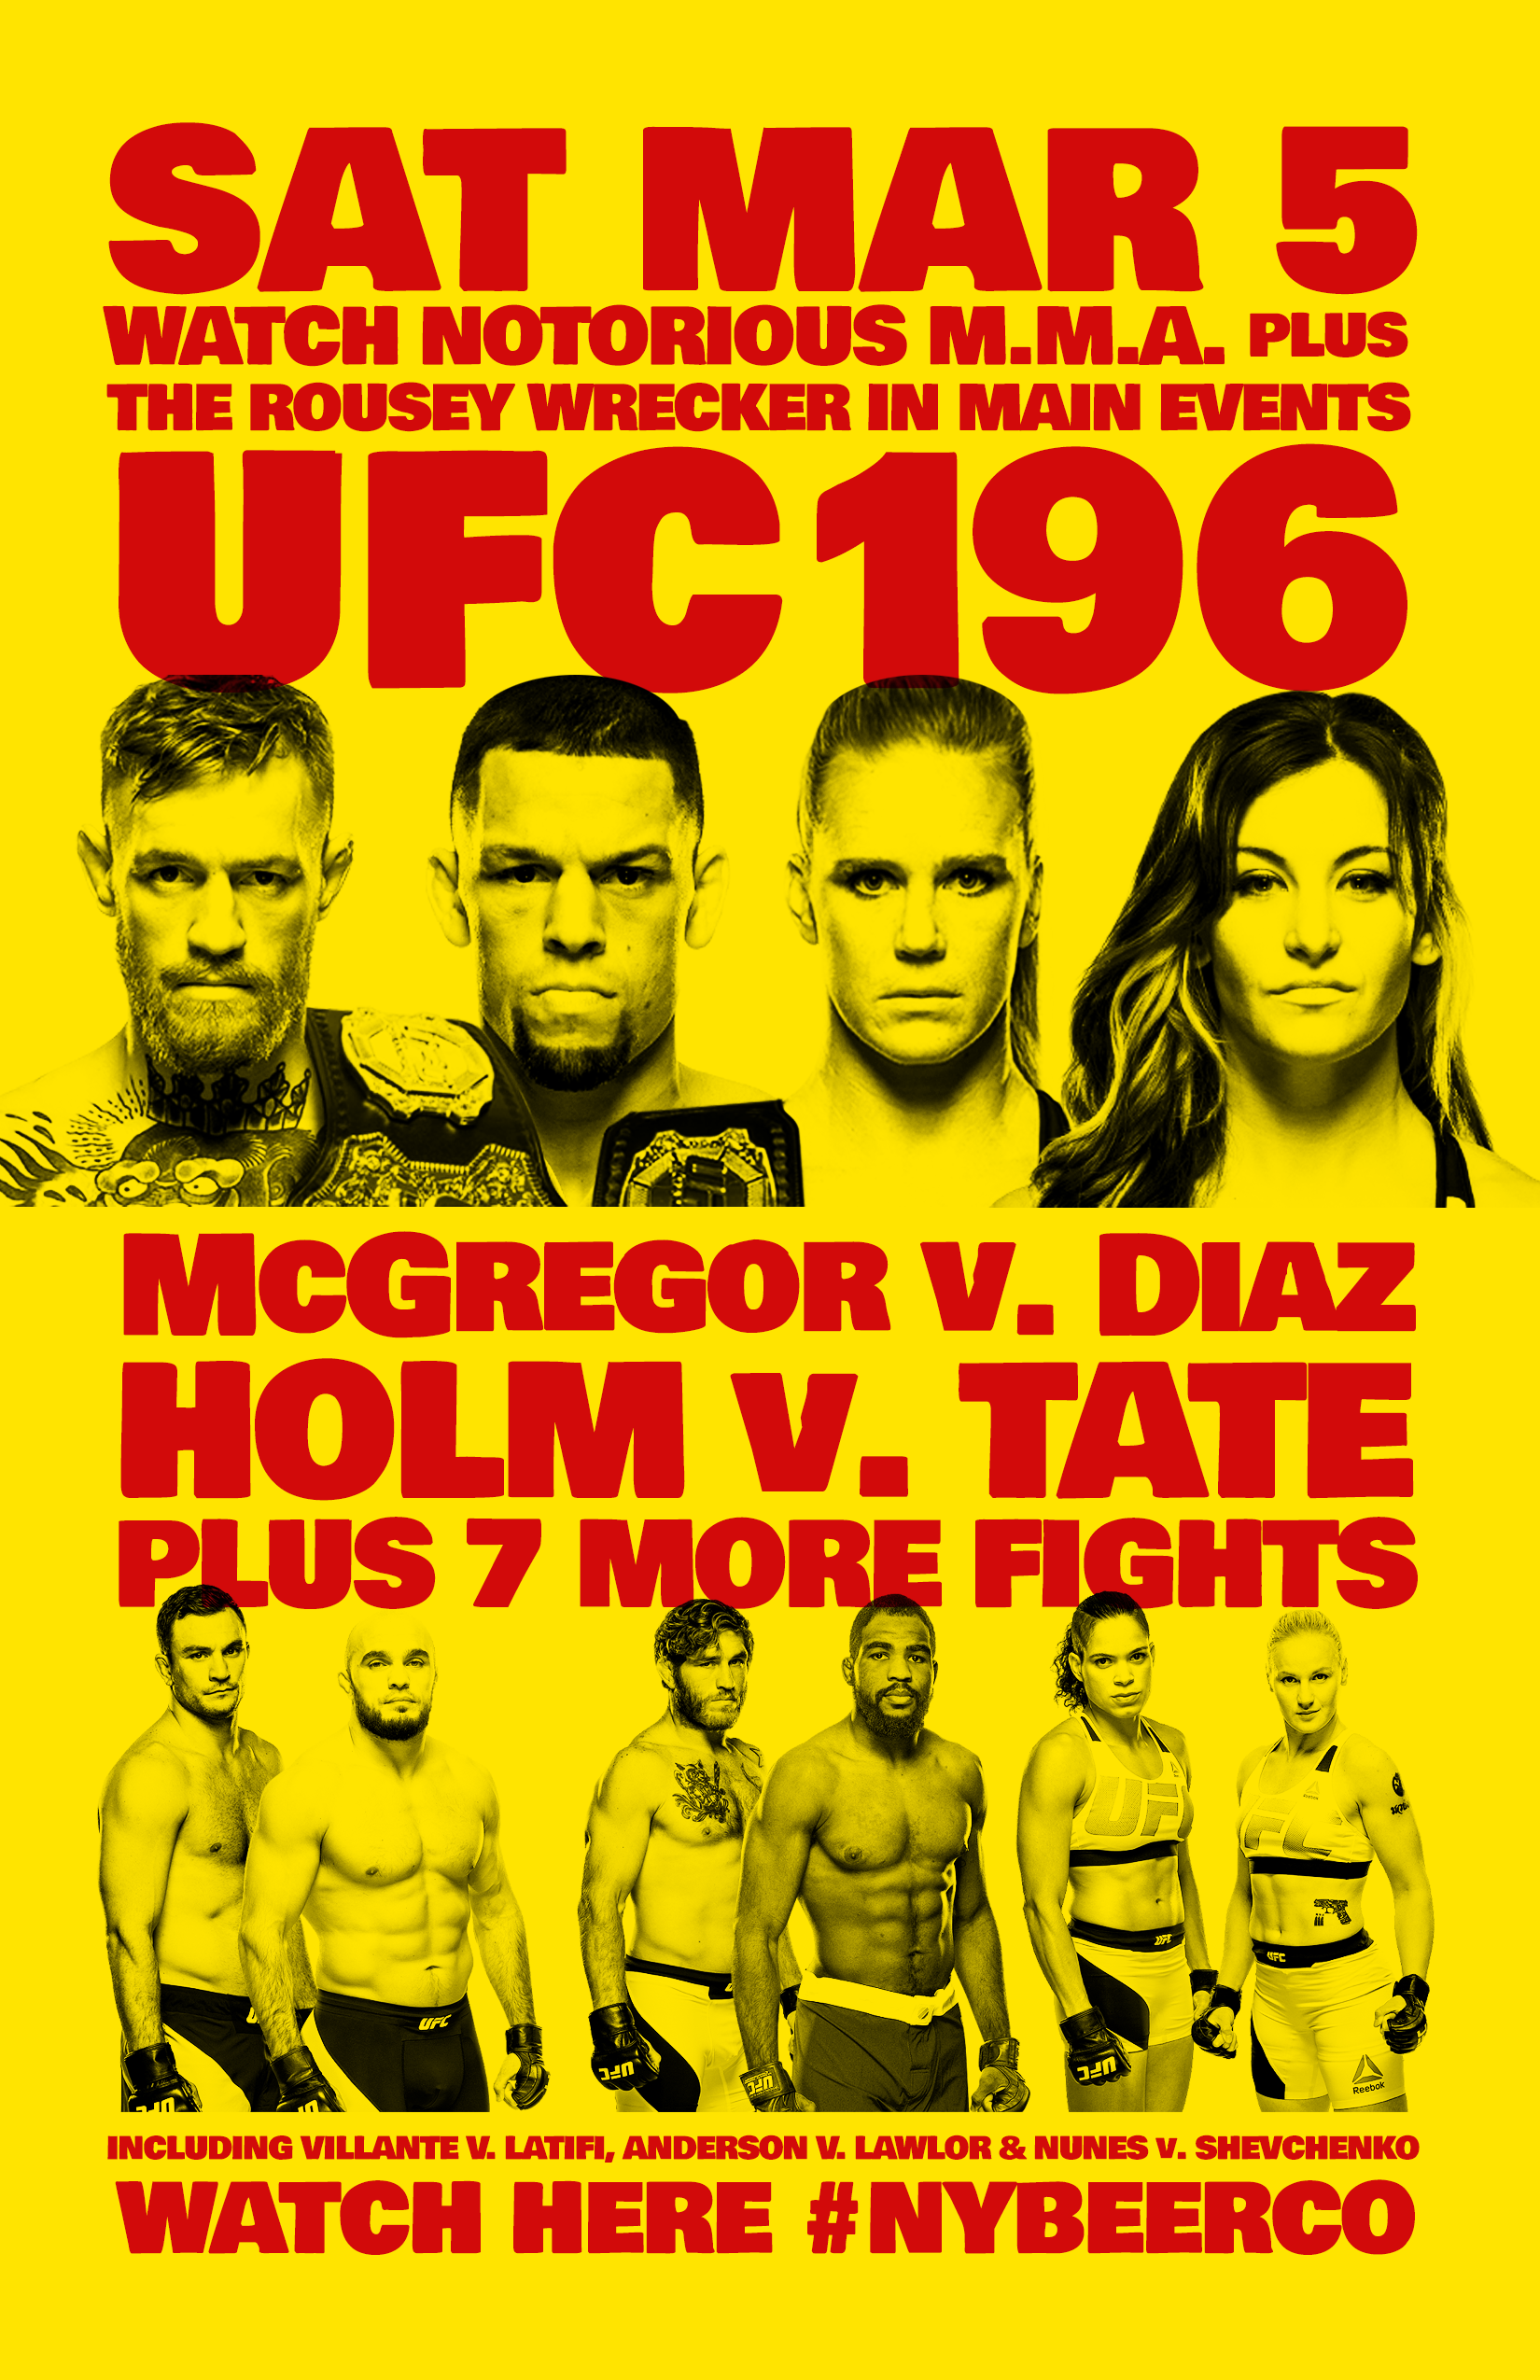 nyc-bars-ufc-196.png